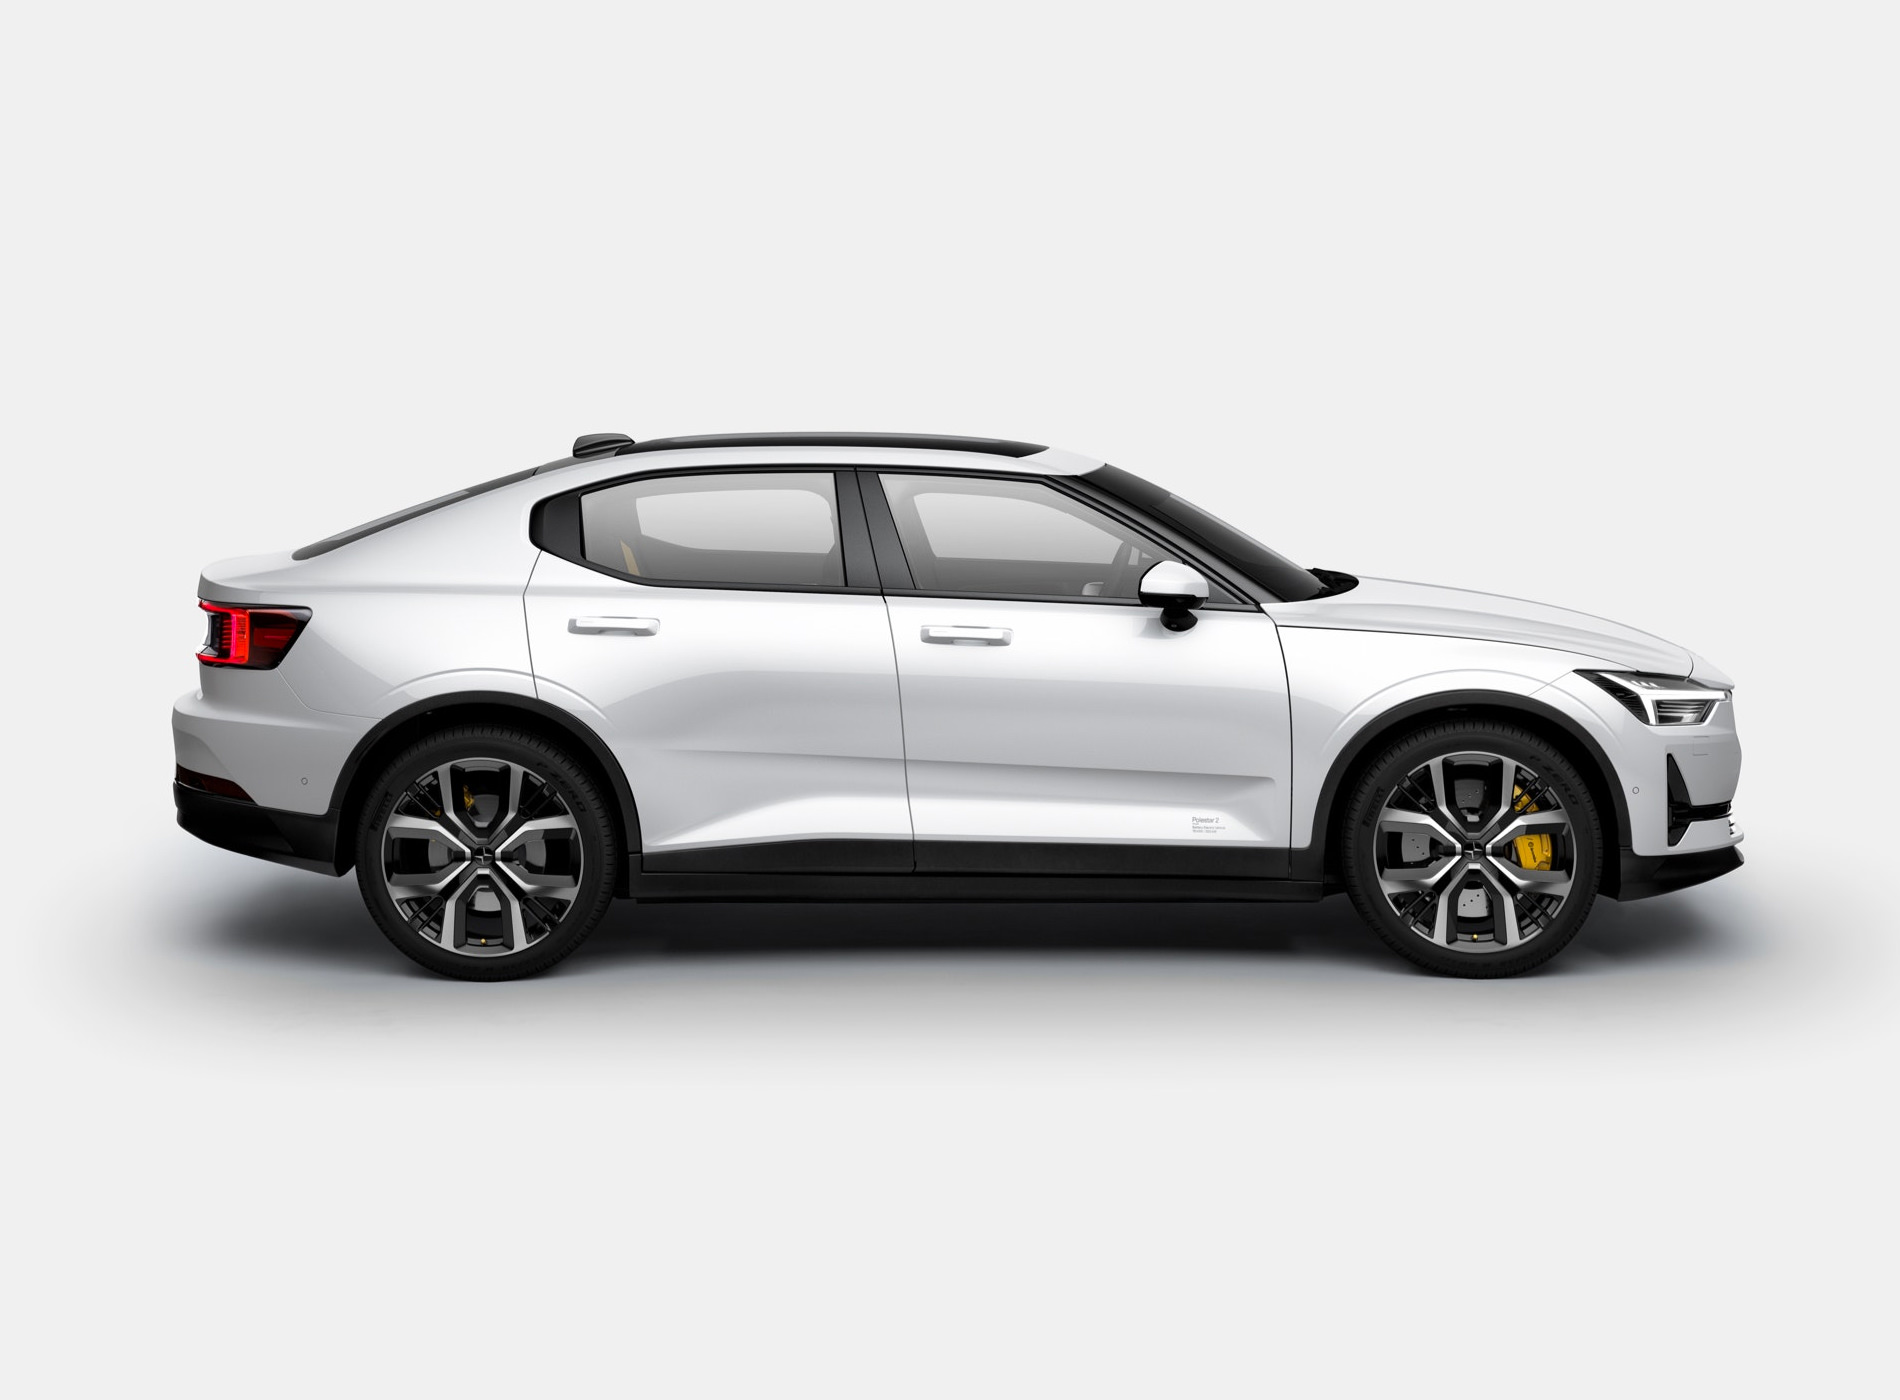 The Polestar 2 Electric Car Shangai Package White